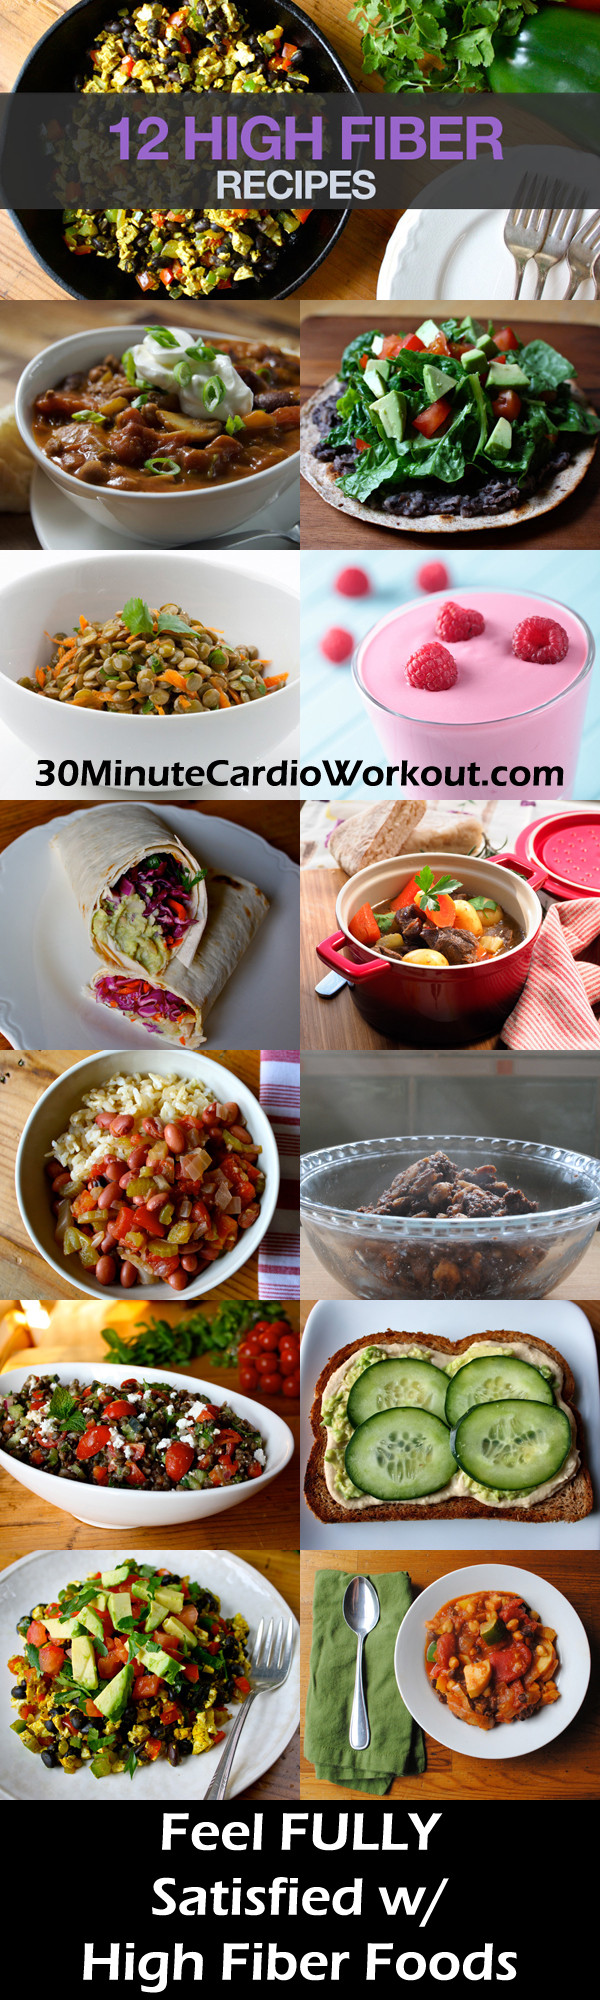 High Fiber Recipes For Weight Loss  12 High Fiber Recipes You ll Love EAT MORE & LOSE WEIGHT